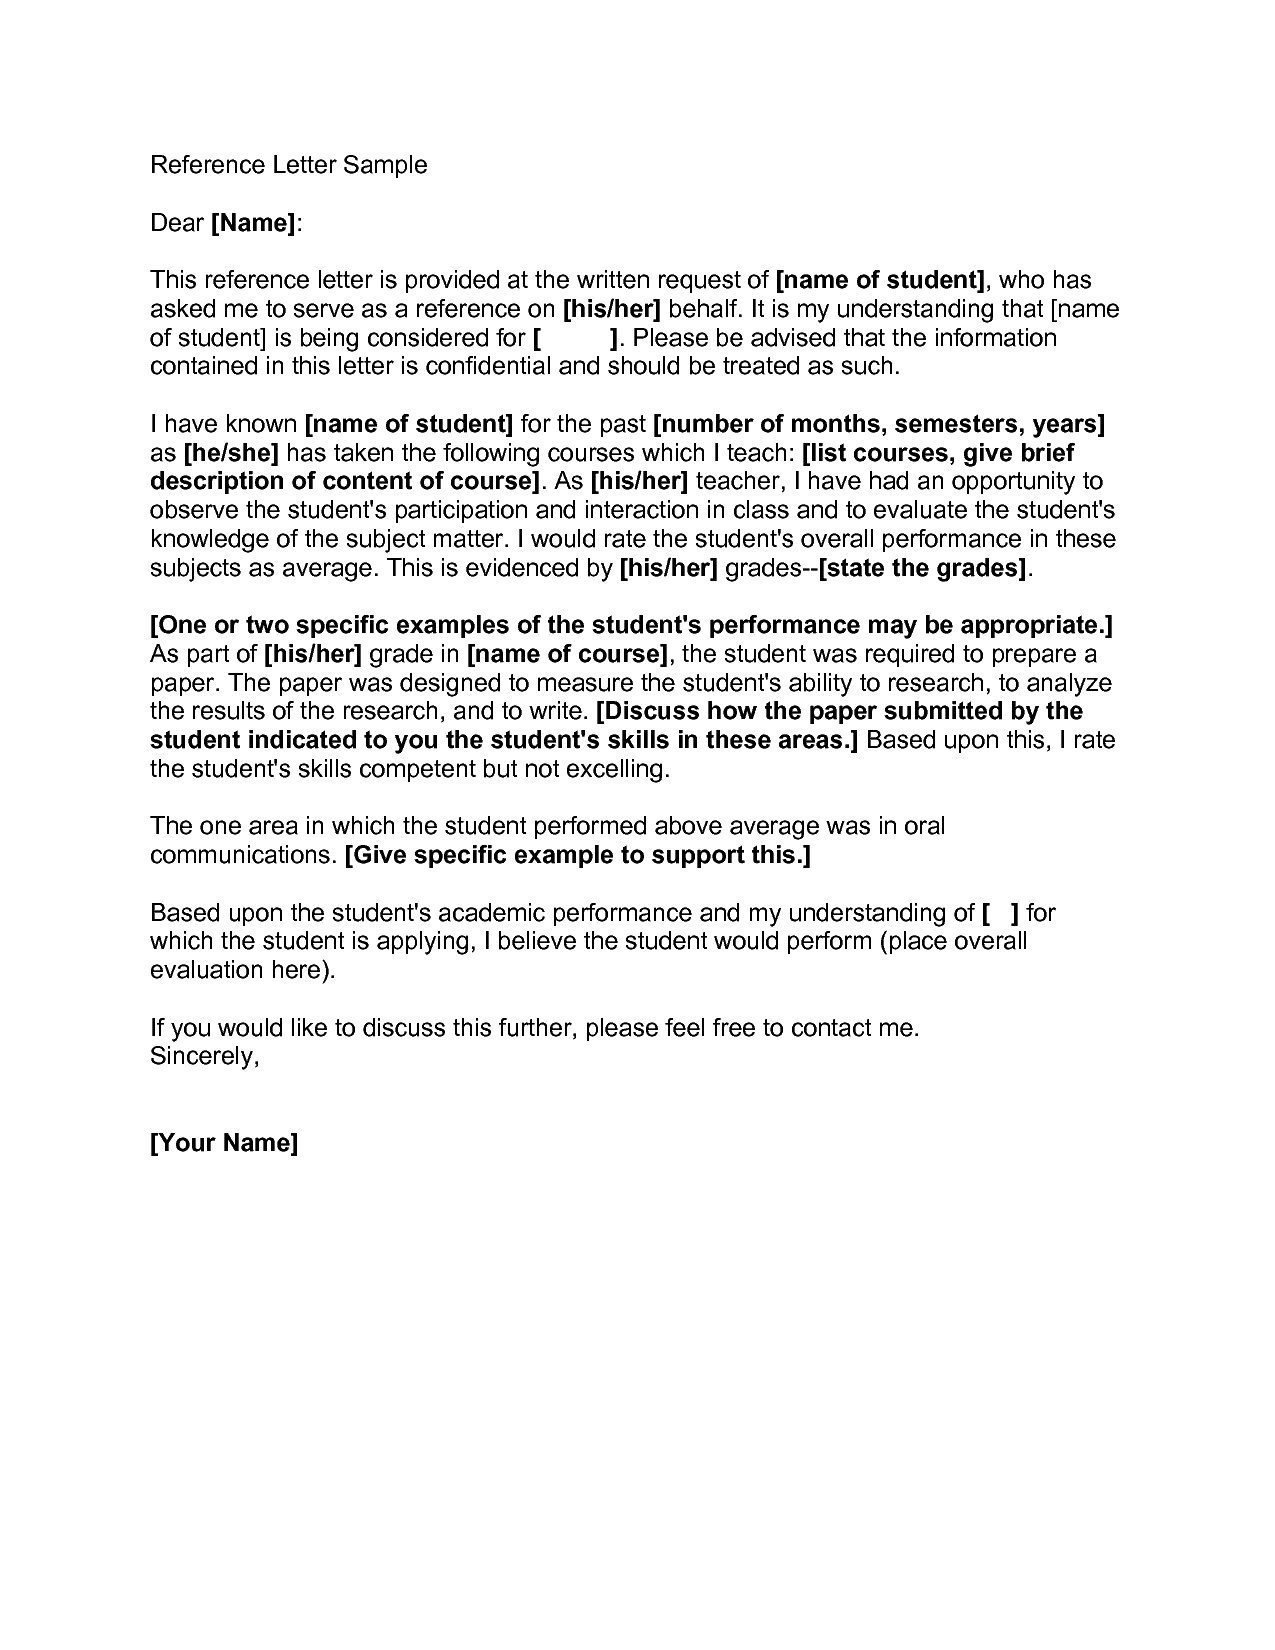 Reference Letter SamplesExamples Of Reference Letters Request Letter Sample